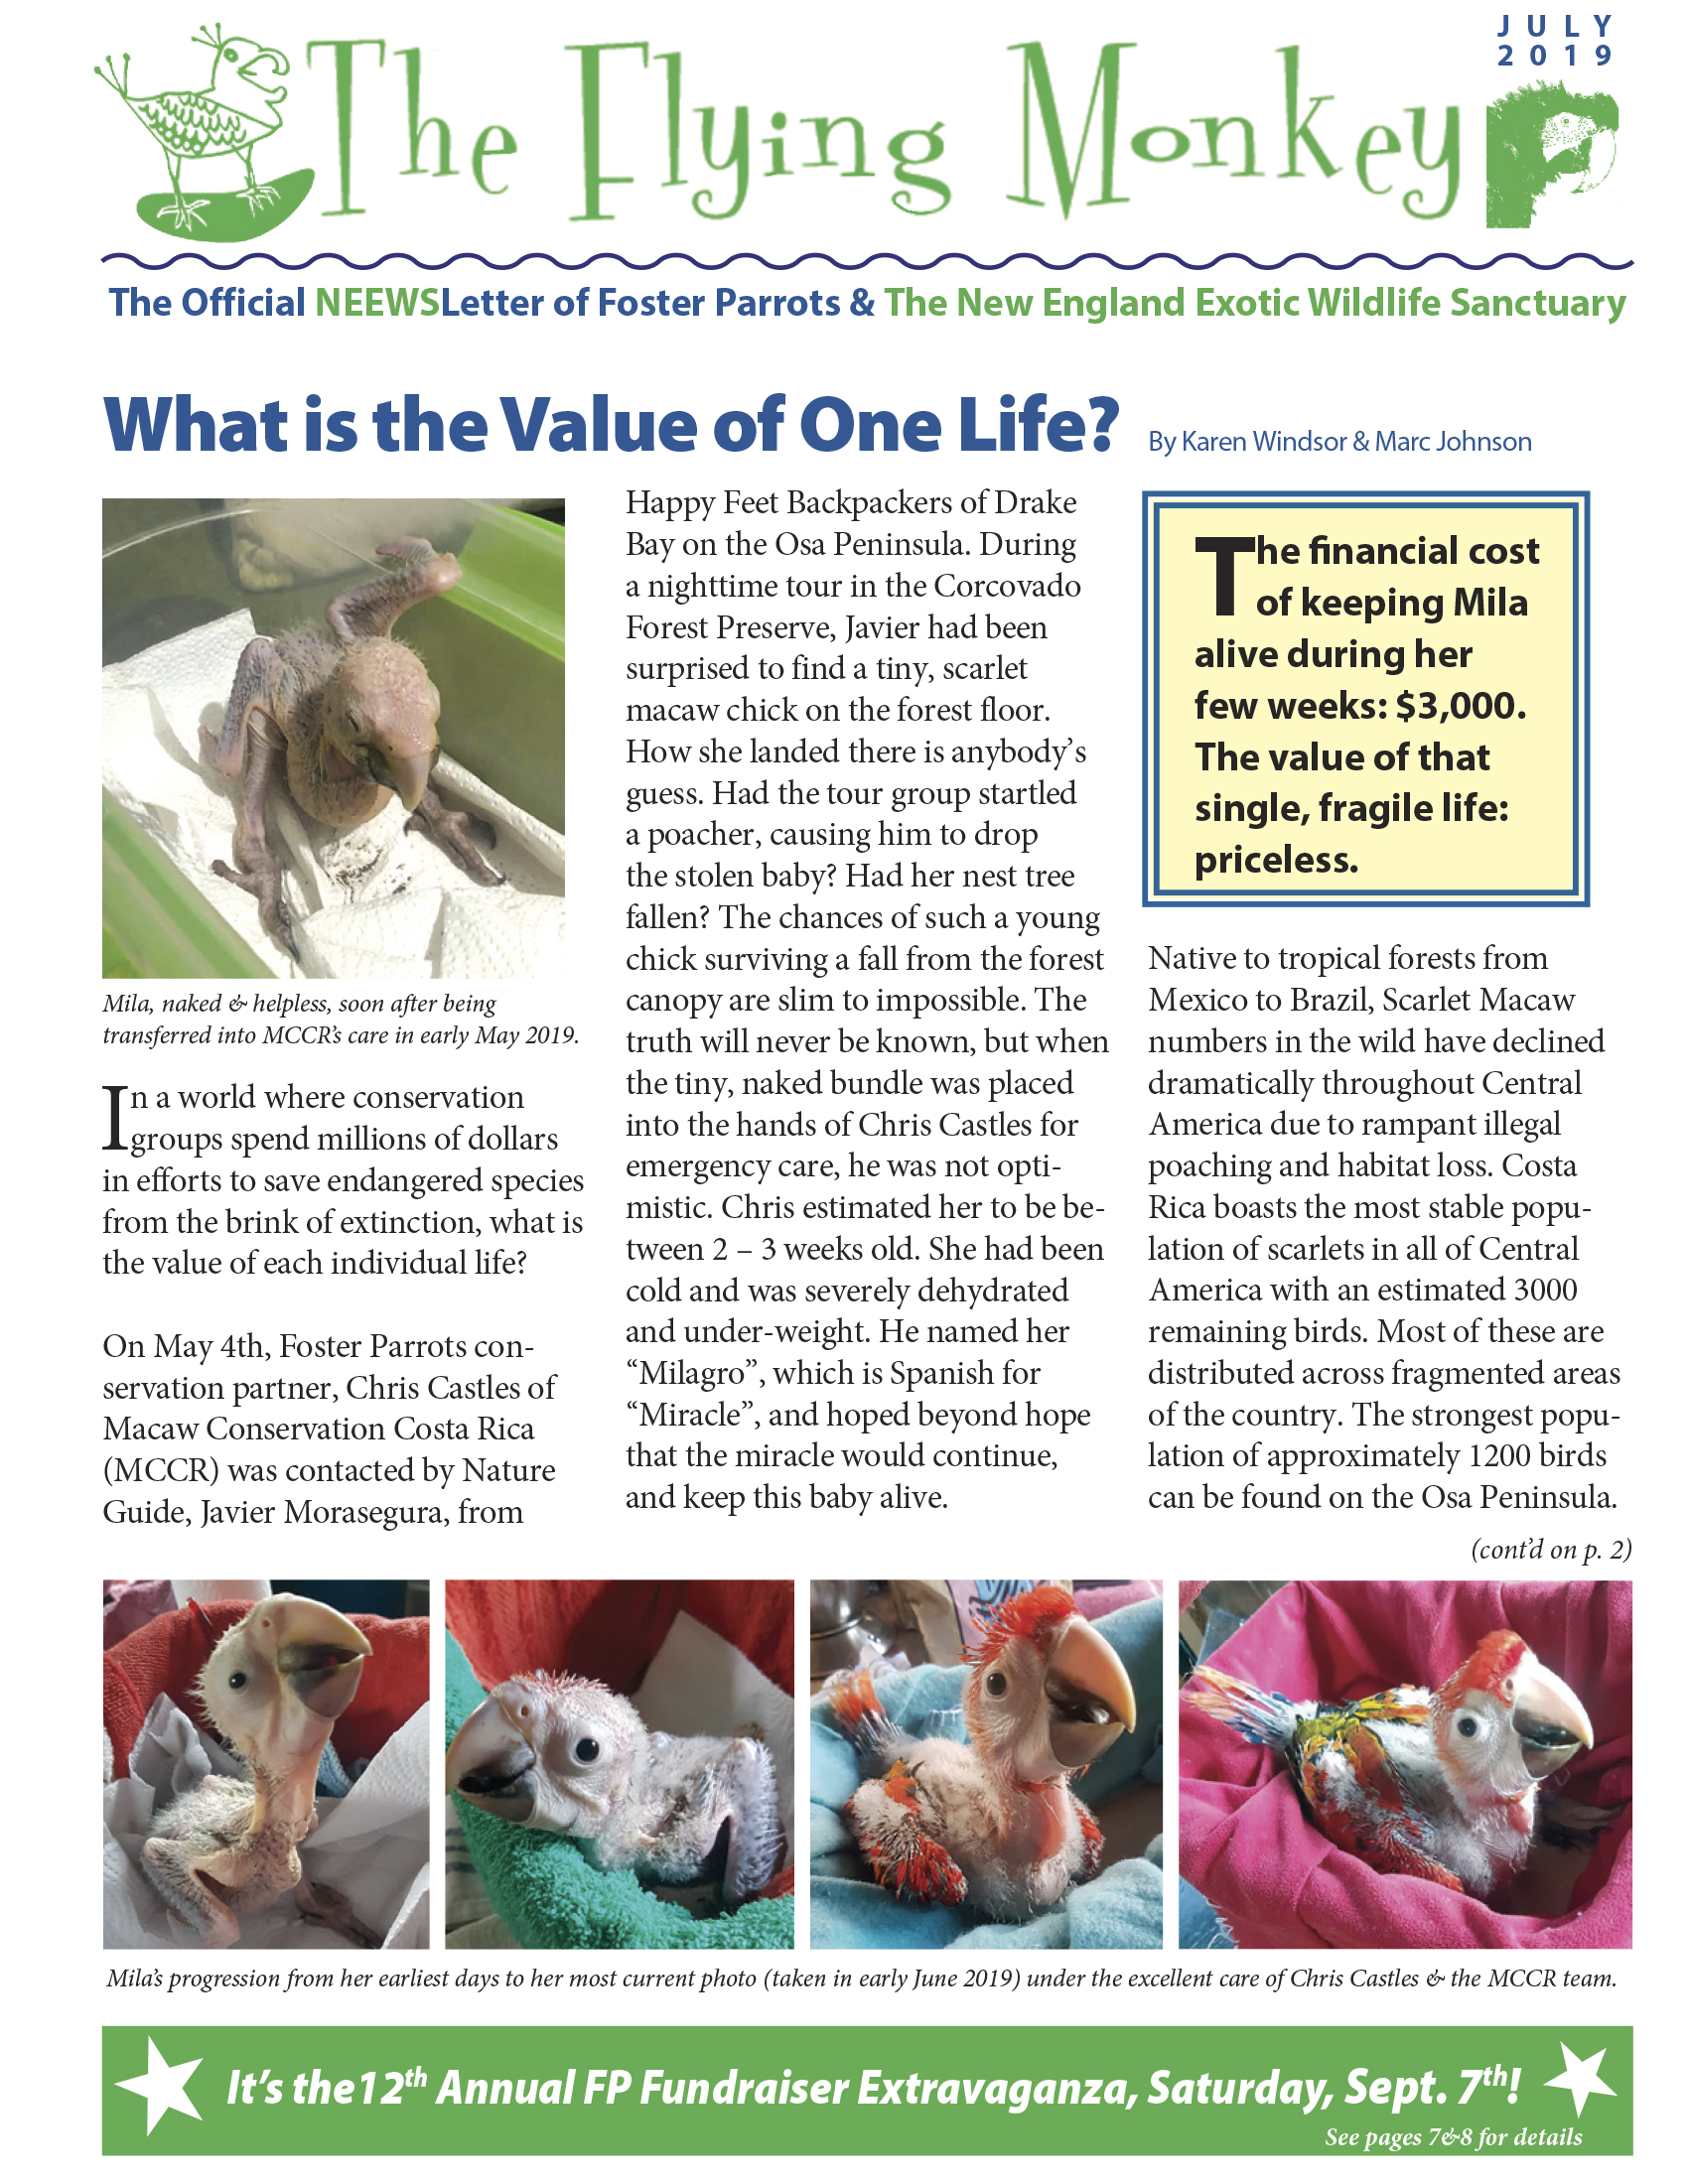 Here's the first page of the July 2019 Foster Parrots & NEEWSletter, featuring an article about MCCR's latest work with Mila, a scarlet macaw chick now in MCCR's care. Look below for the second page of the NEEWSletter…